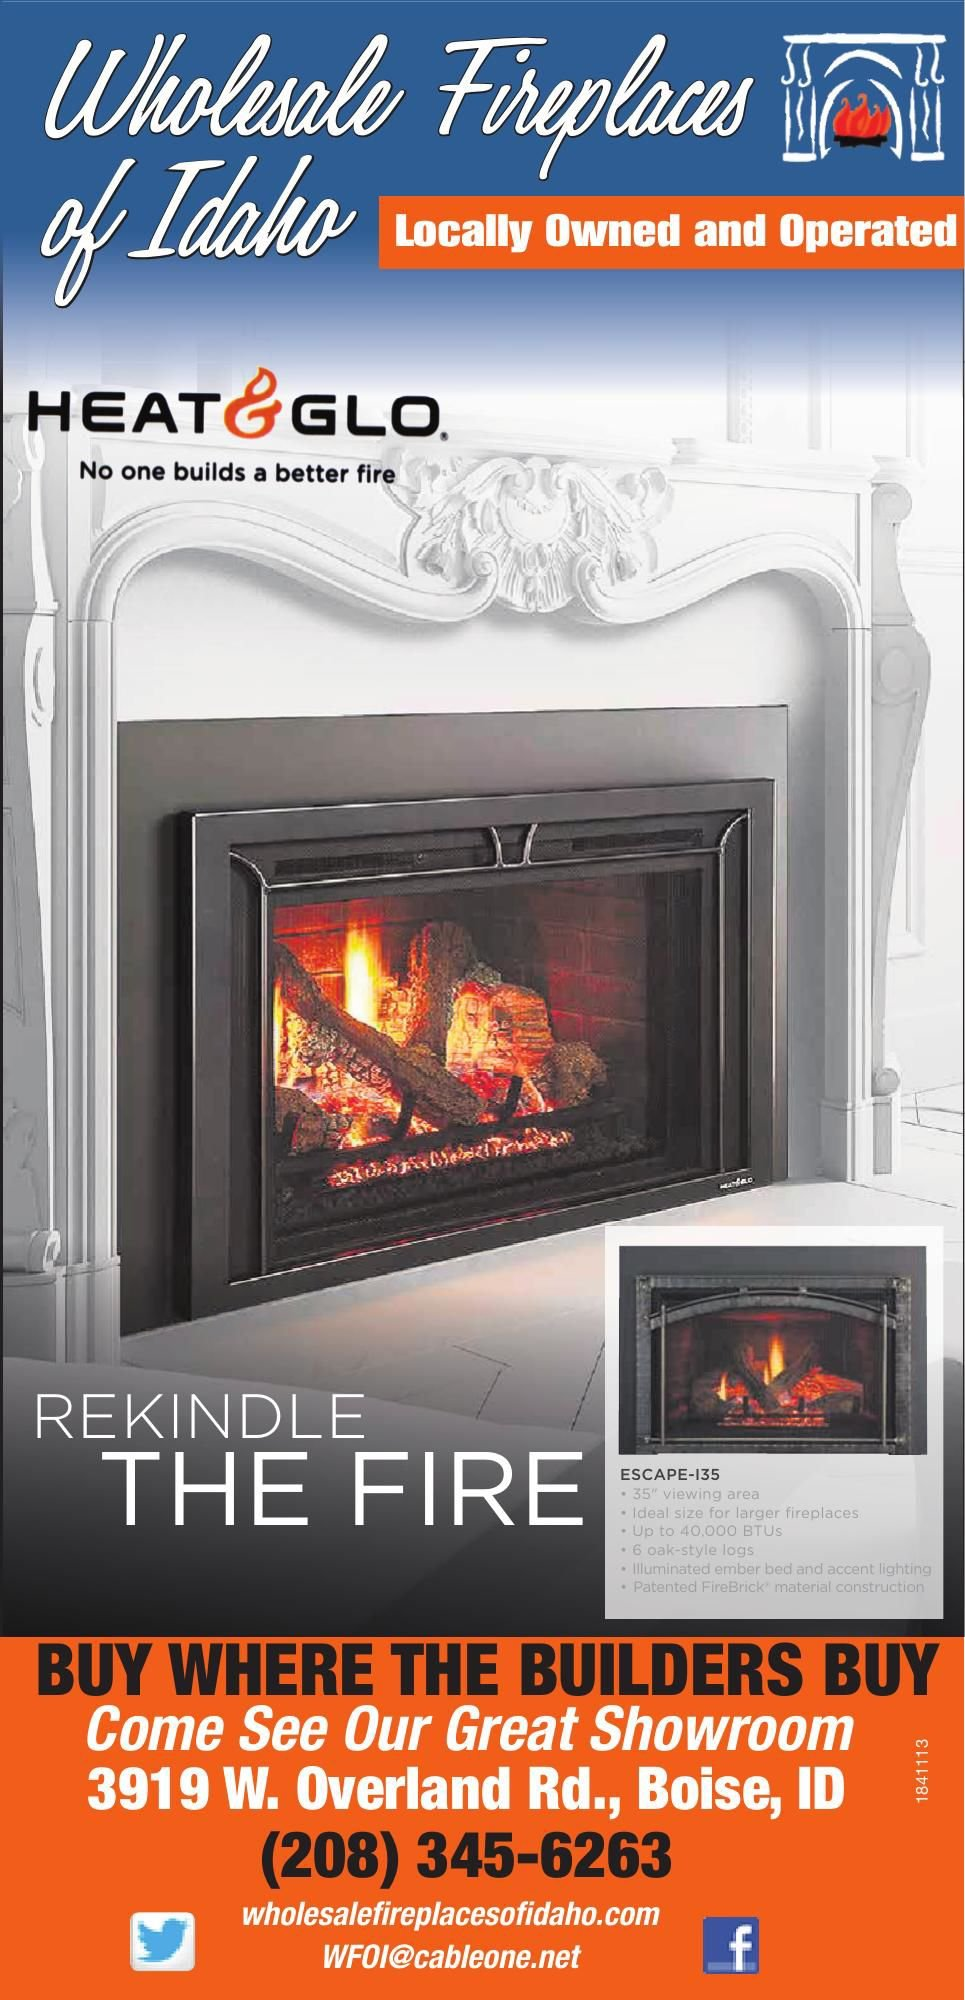 Wholesale Fireplaces